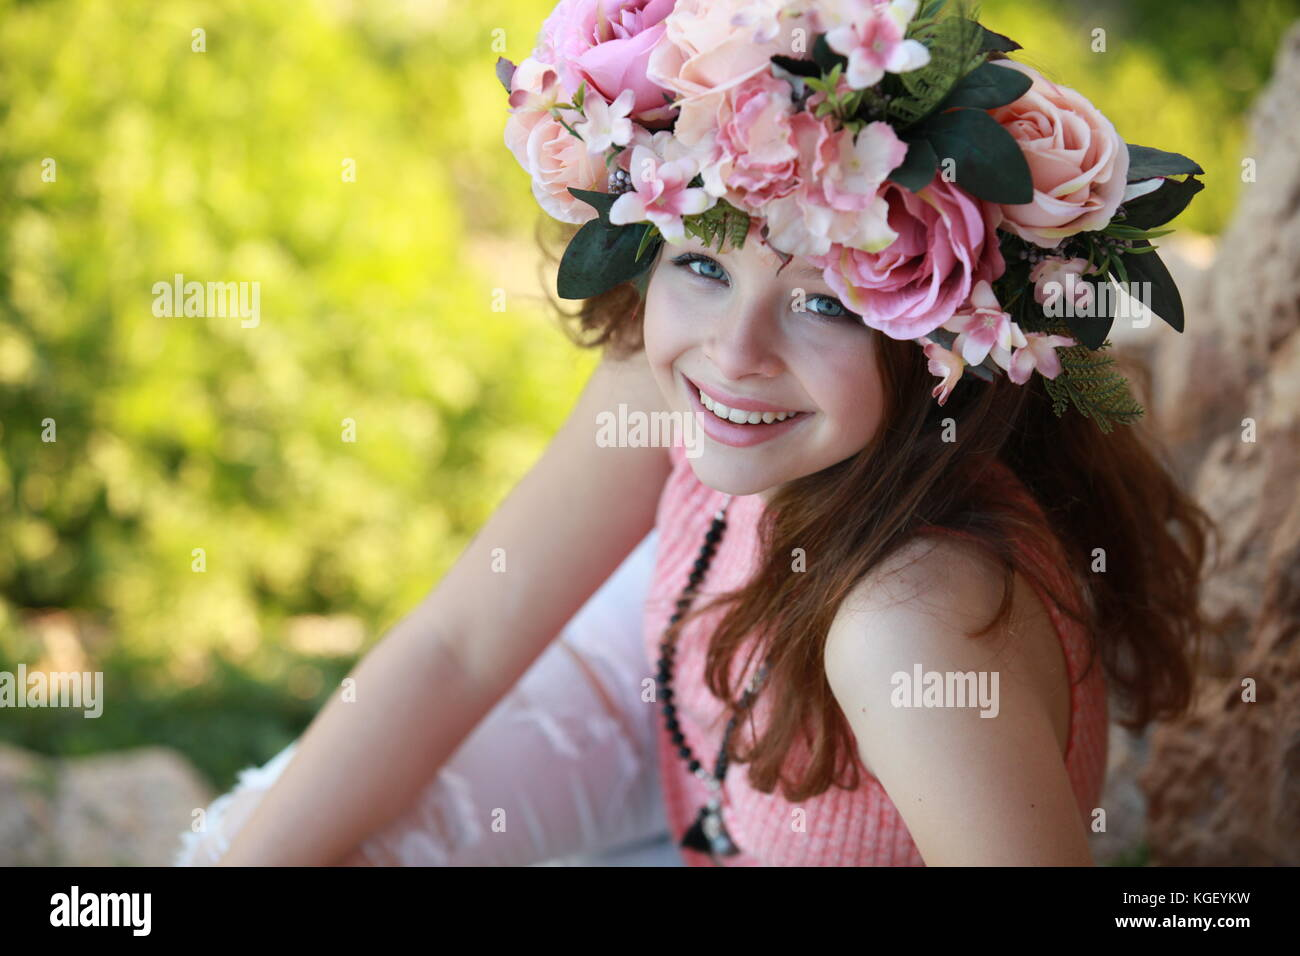 Woman wearing flowers crown stock photos woman wearing flowers a beautiful young woman wearing a colorful flower crown and fashionable clothing in a fashion shoot izmirmasajfo